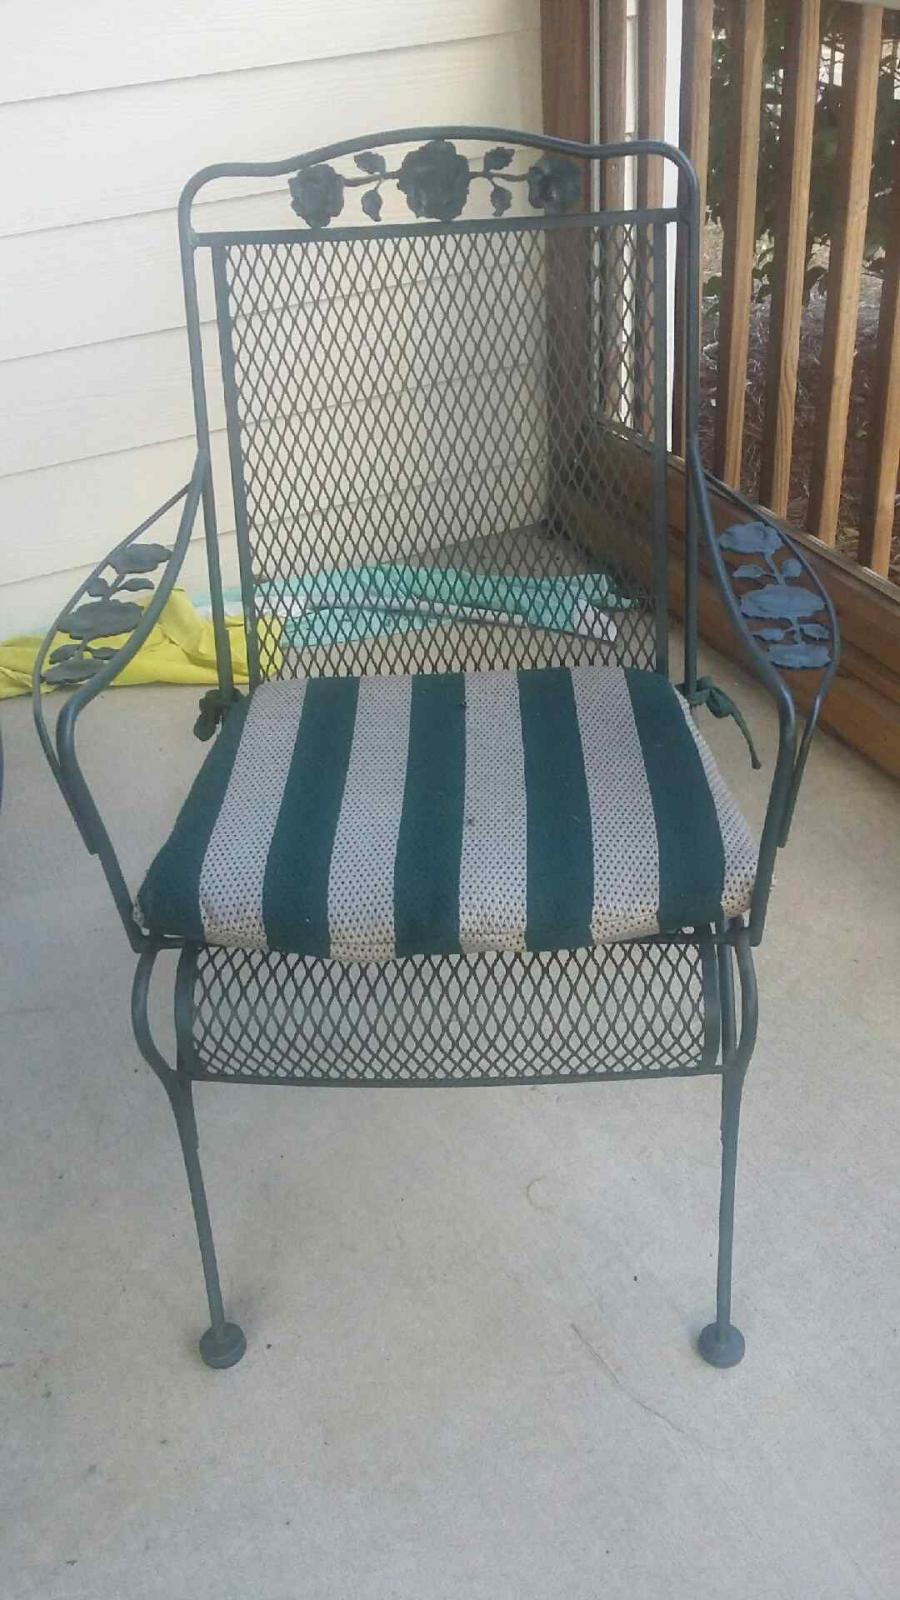 Outdoor Furniture For Sale Got the Goods Paulding